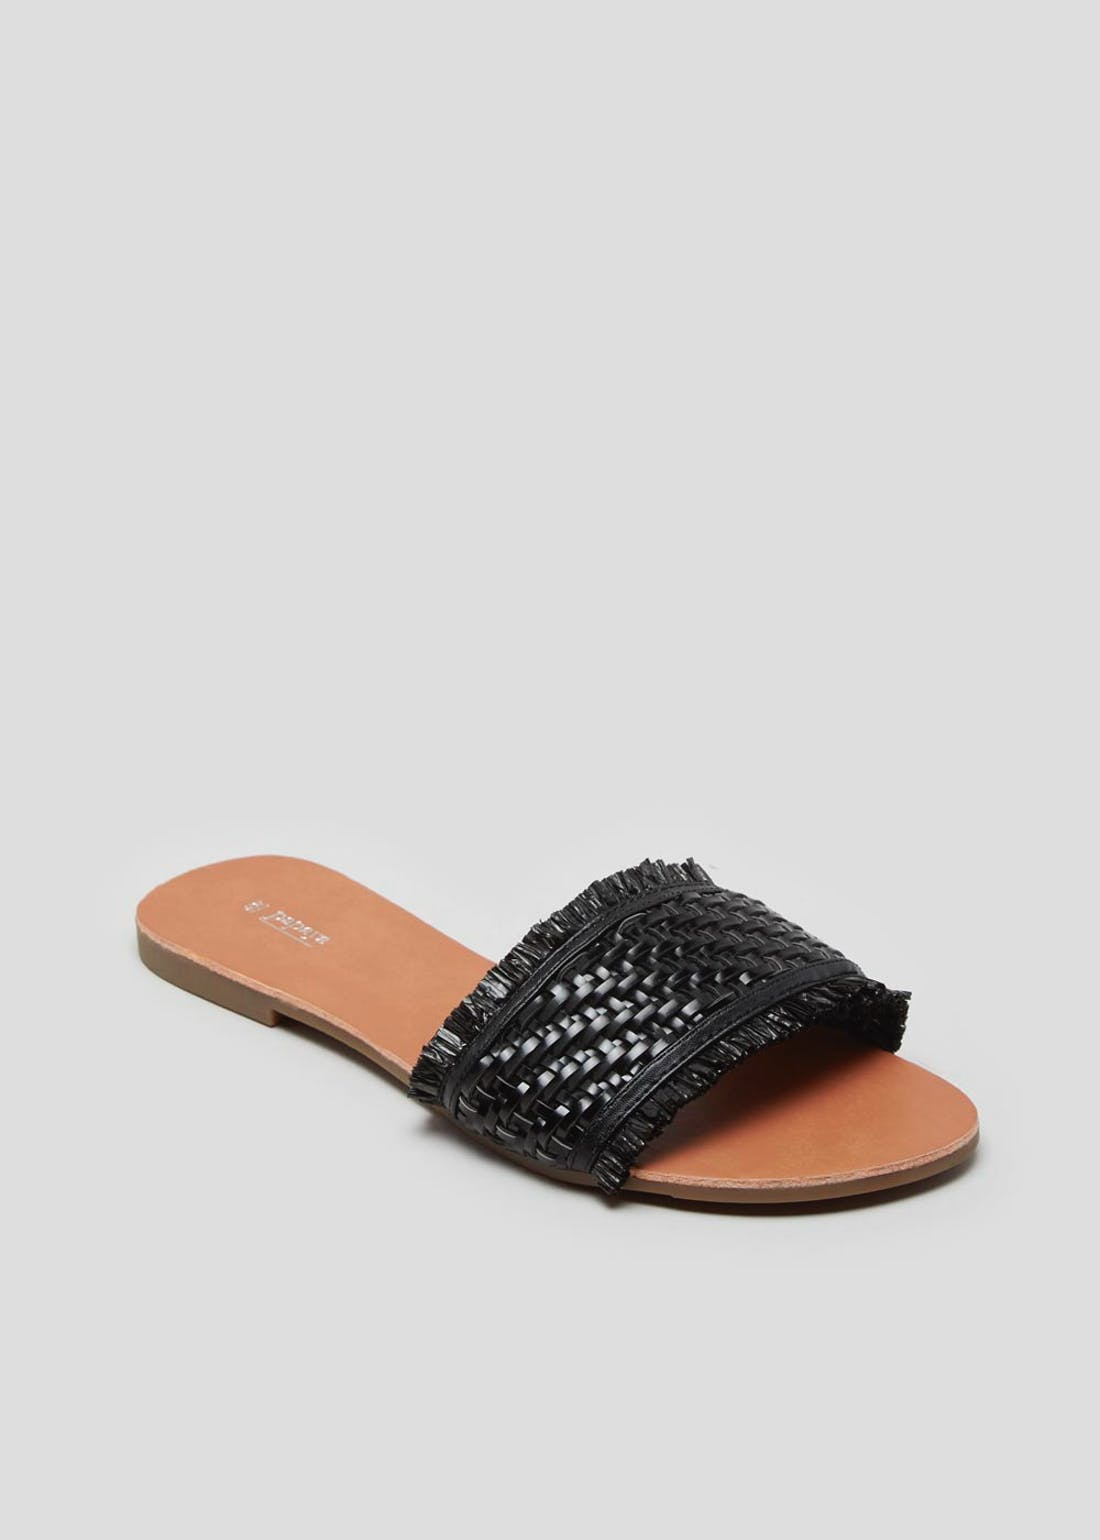 Black Woven Straw Flat Mule Sandals